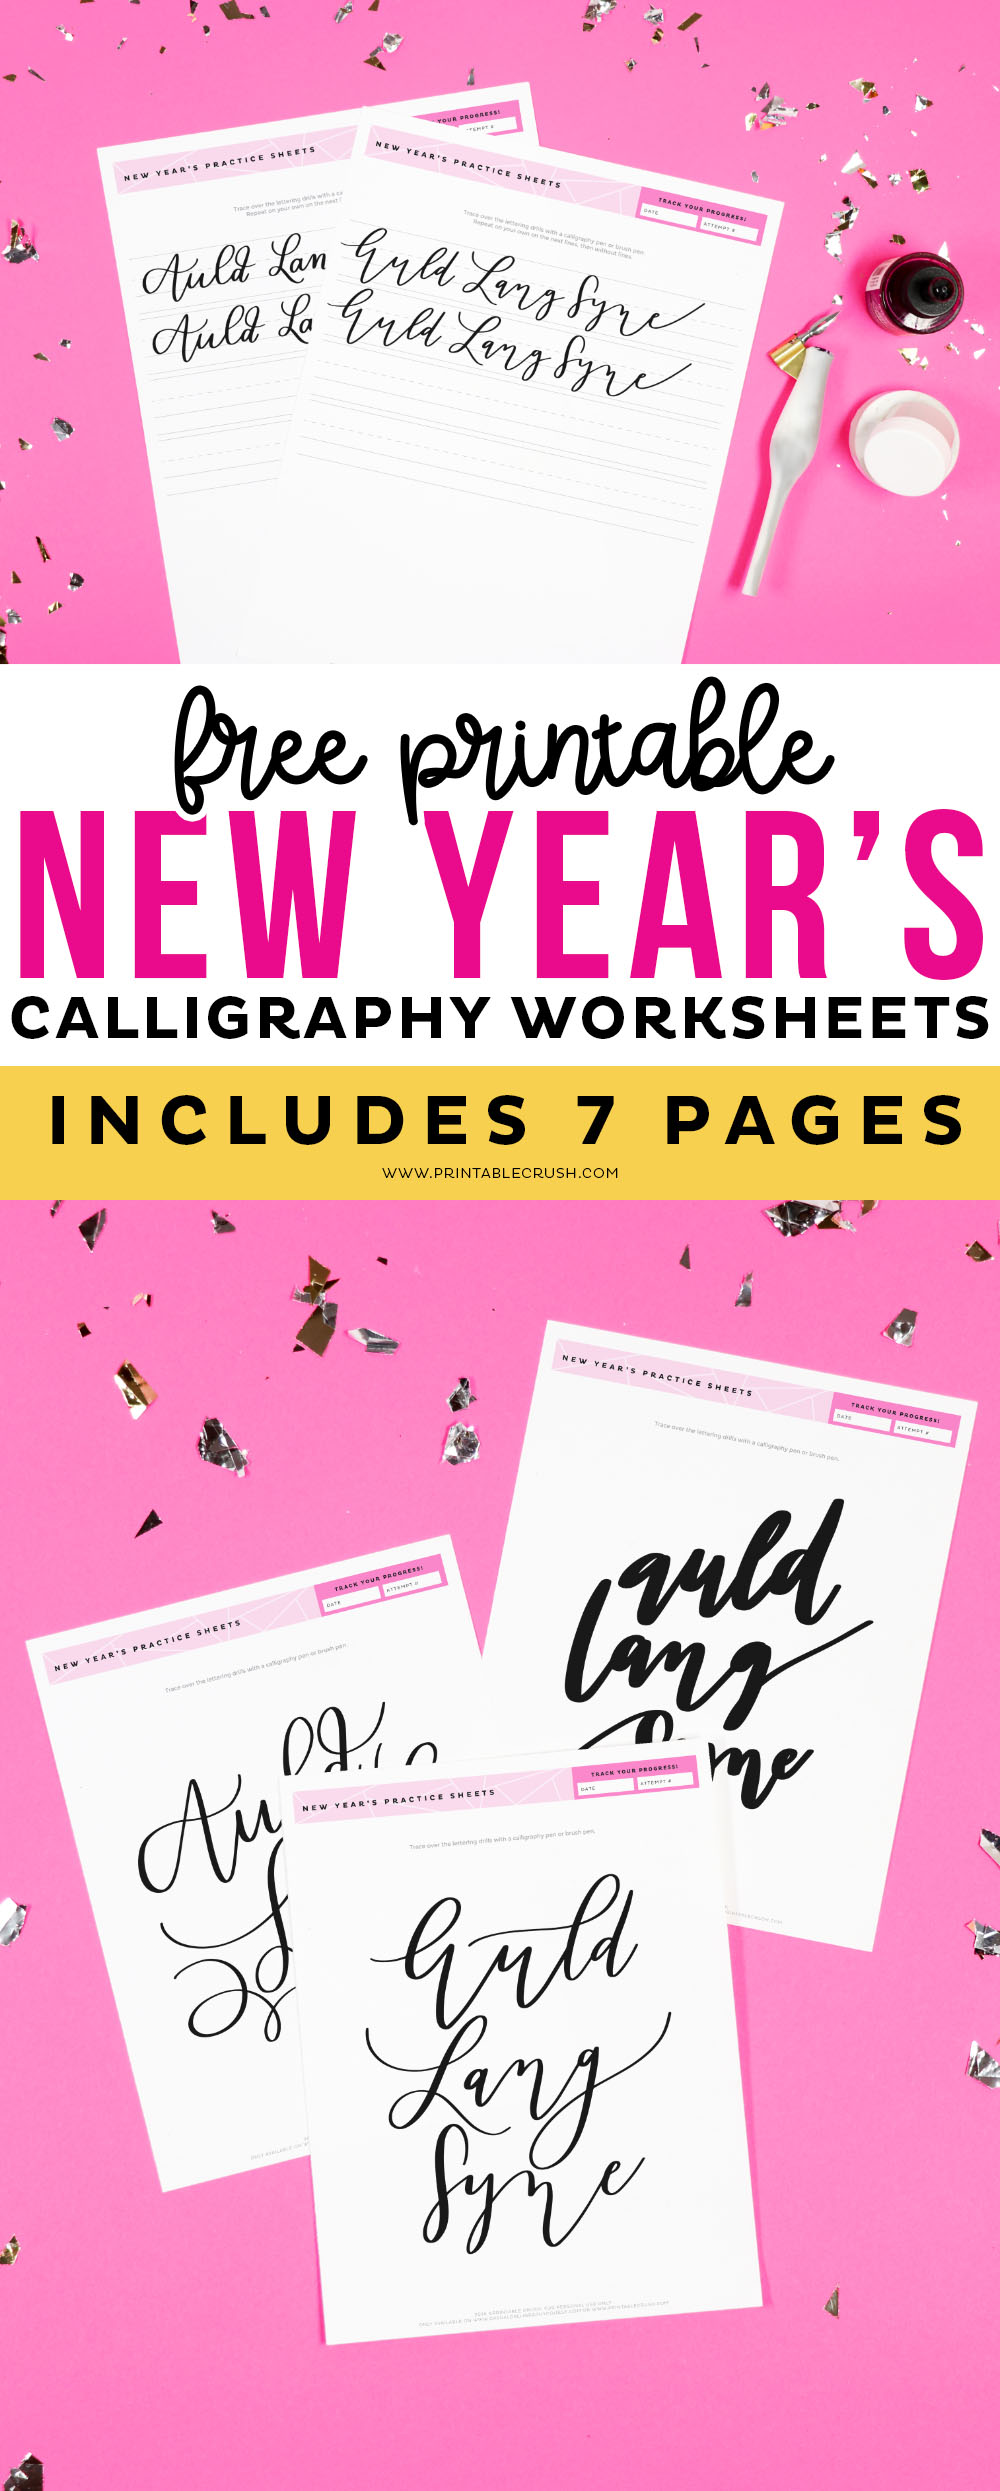 Free Auld Lang Syne Calligraphy Worksheets - New Year's Hand Lettering Practice Sheets - Calligraphy Practice - Printable Crush #handlettering #calligraphy #calligraphyworksheets via @printablecrush